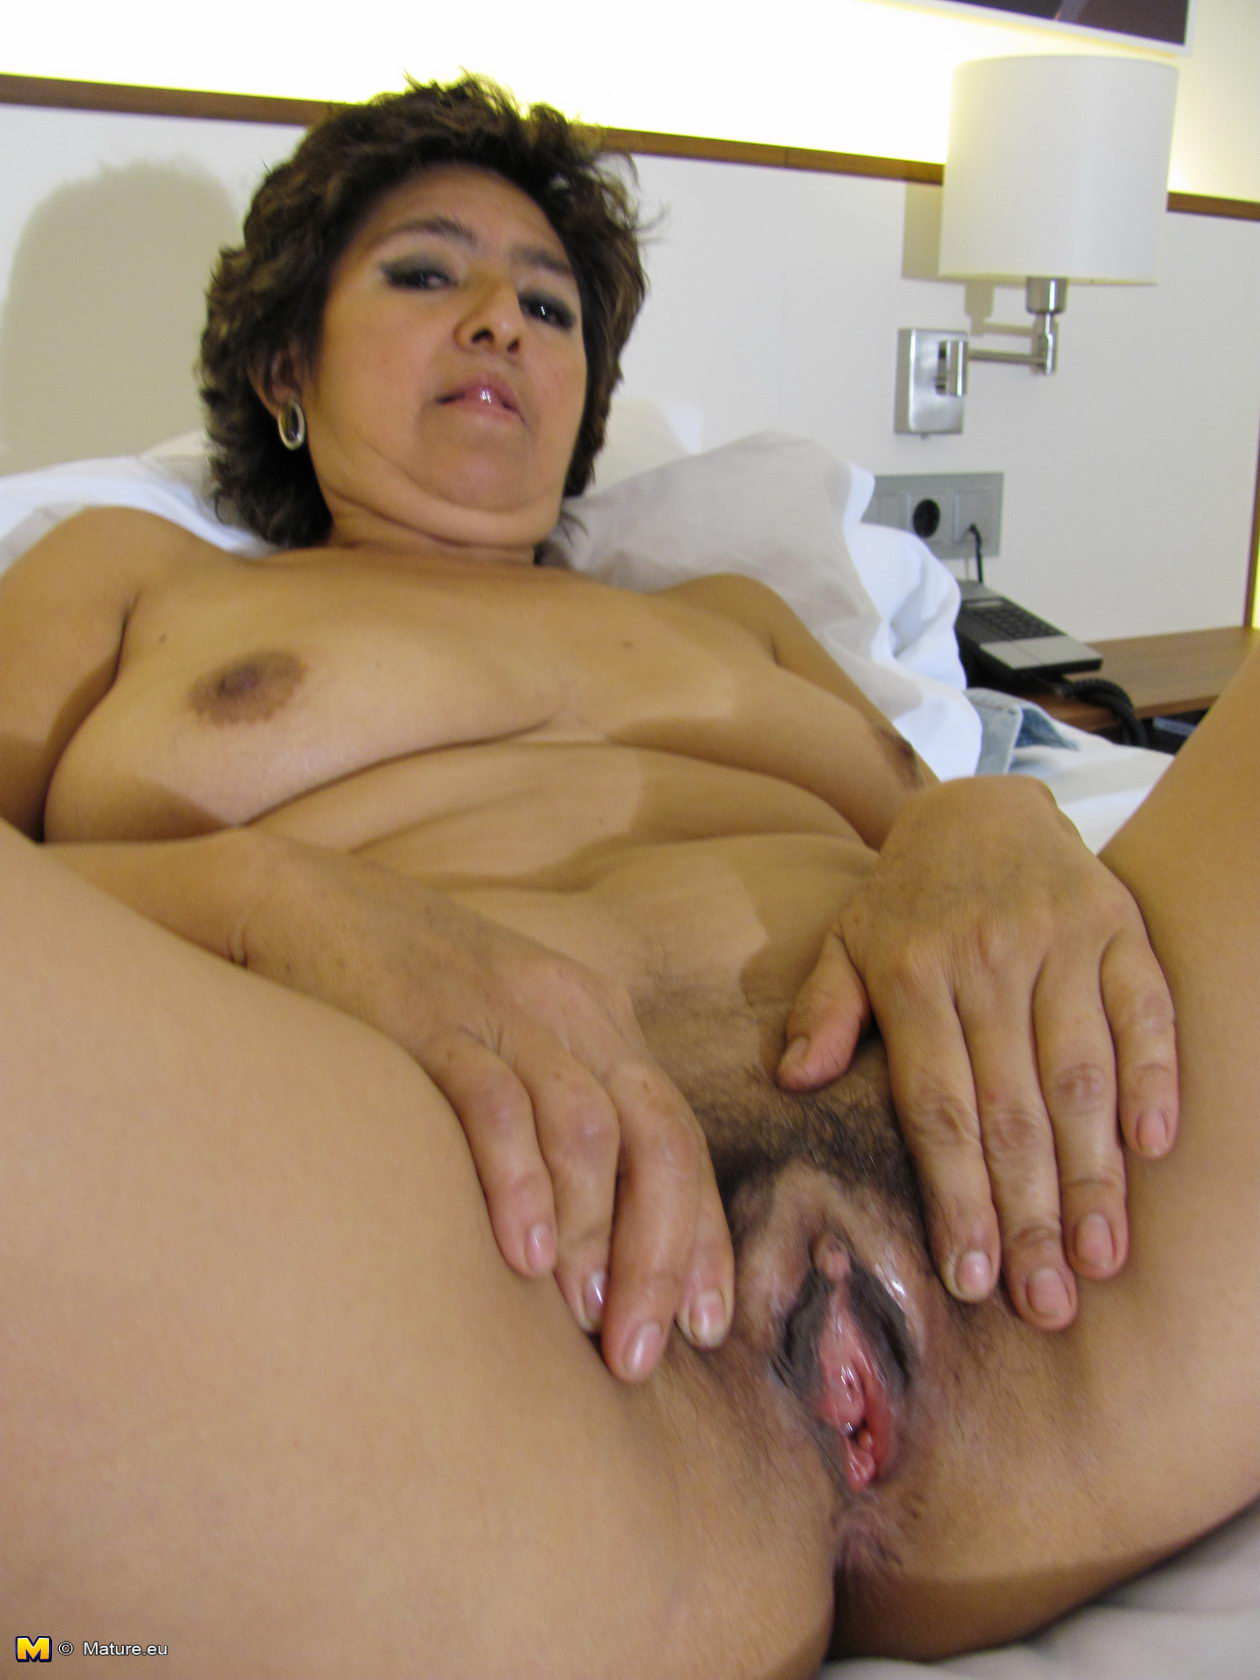 Sexy latina moms nude porn confirm. agree